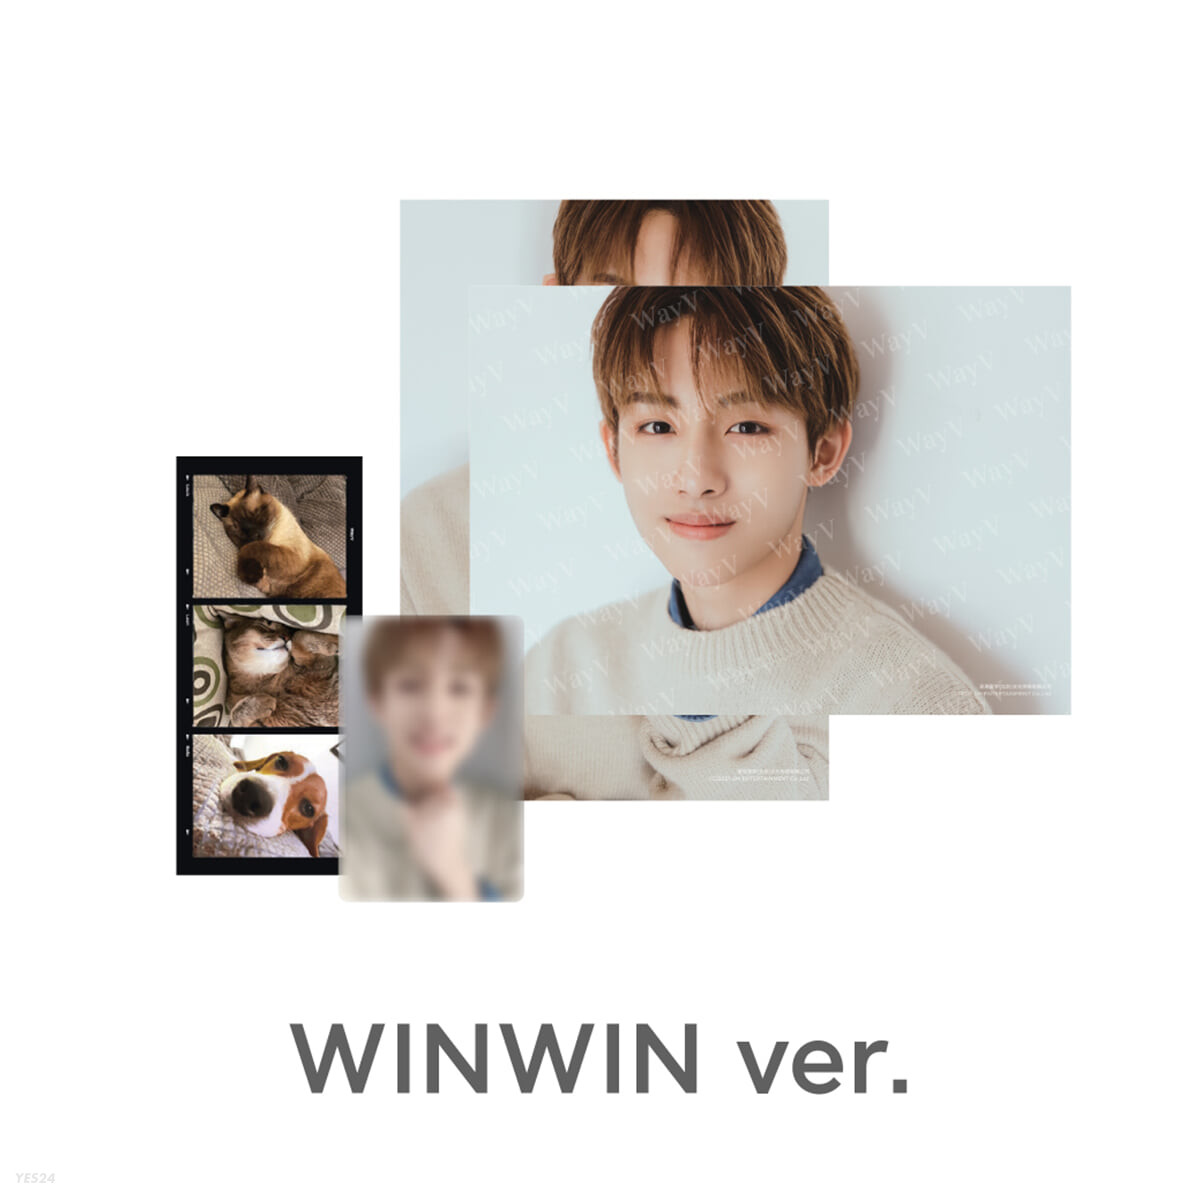 [WINWIN] PHOTO PACK [Our Home : WayV with Little Friends]